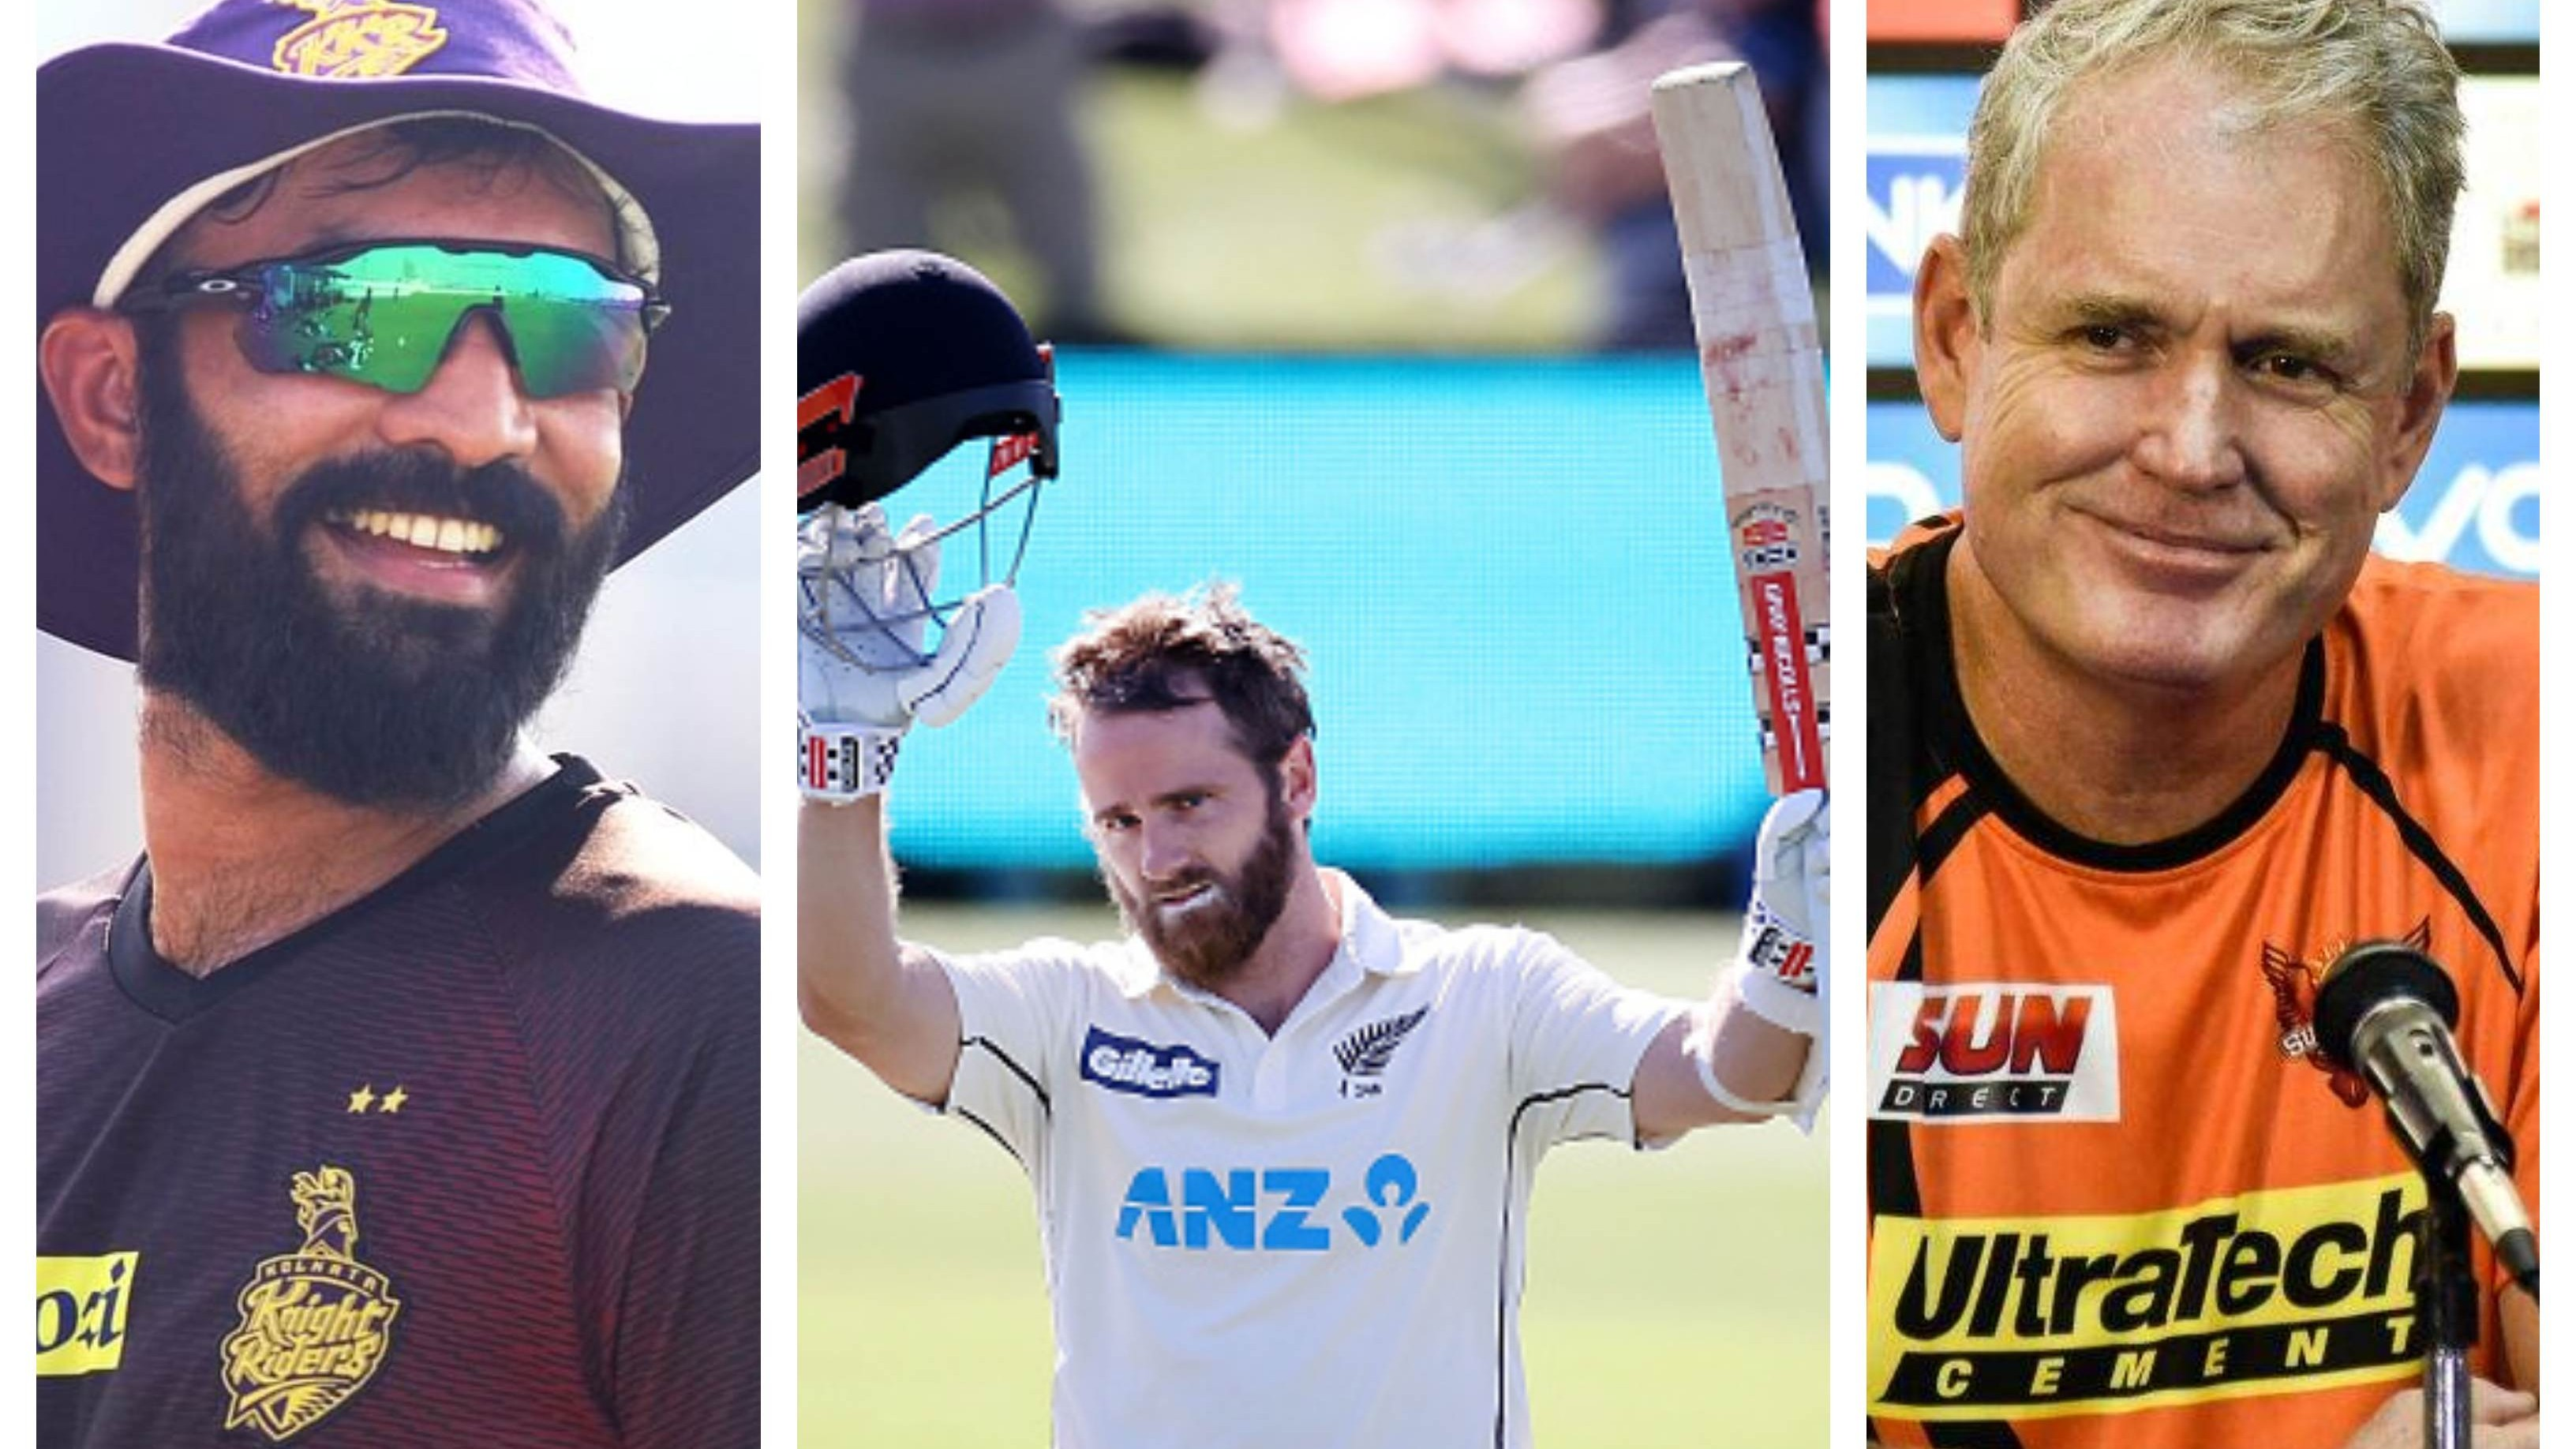 NZ v PAK 2020-21: Cricket fraternity reacts as Kane Williamson's 112* puts New Zealand in control of 2nd Test